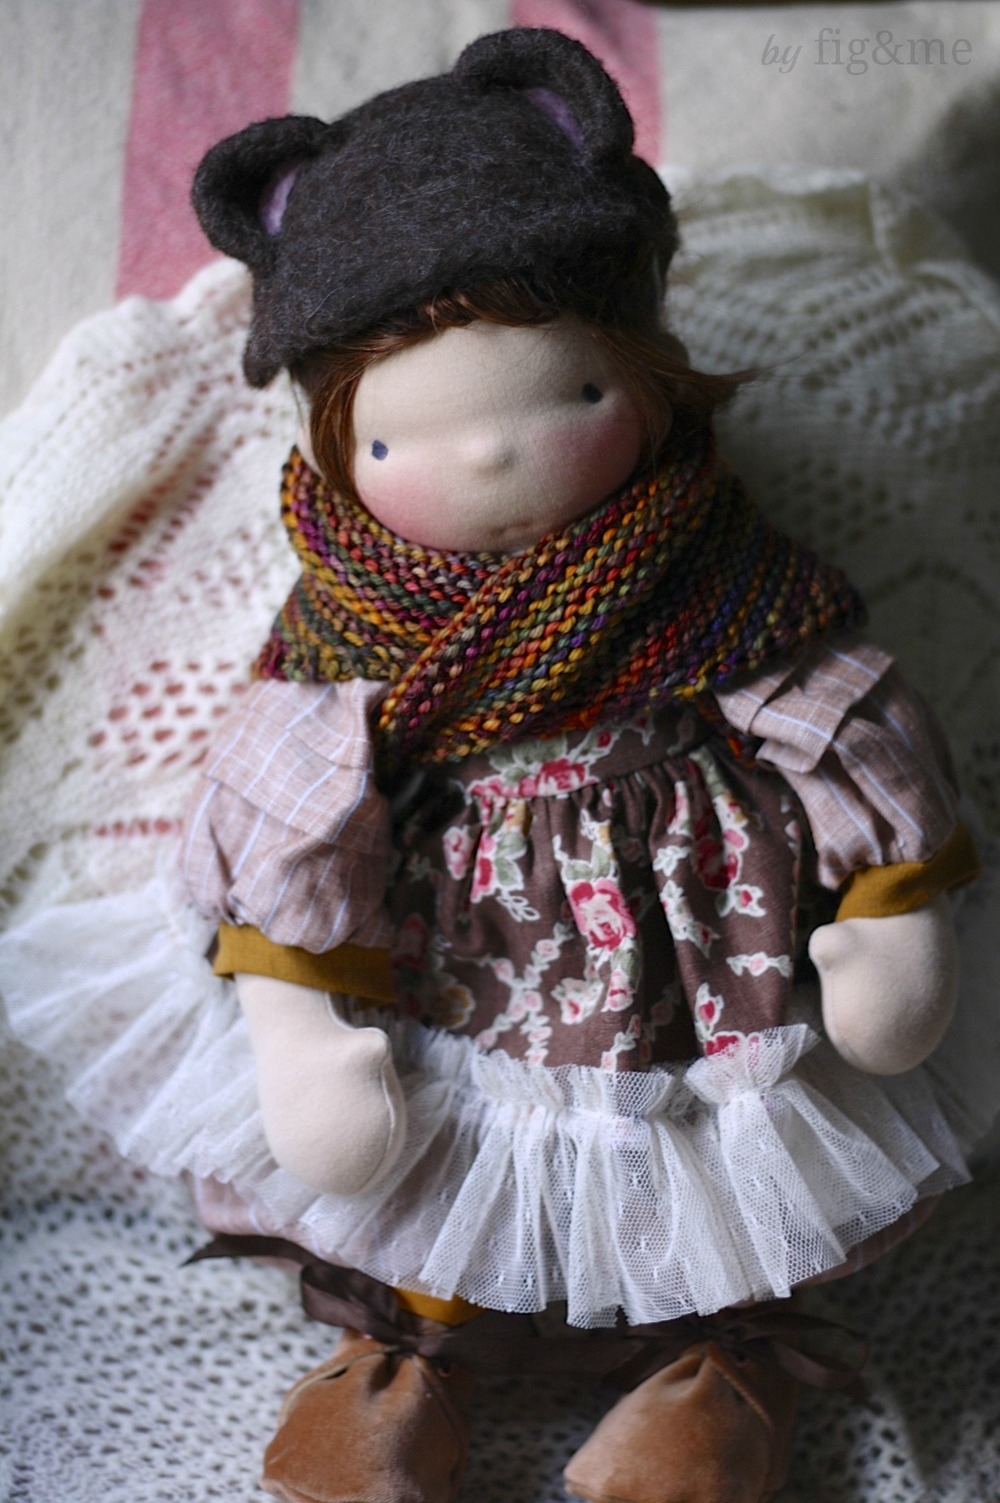 Tina, a handmade natural doll by Fig and me.